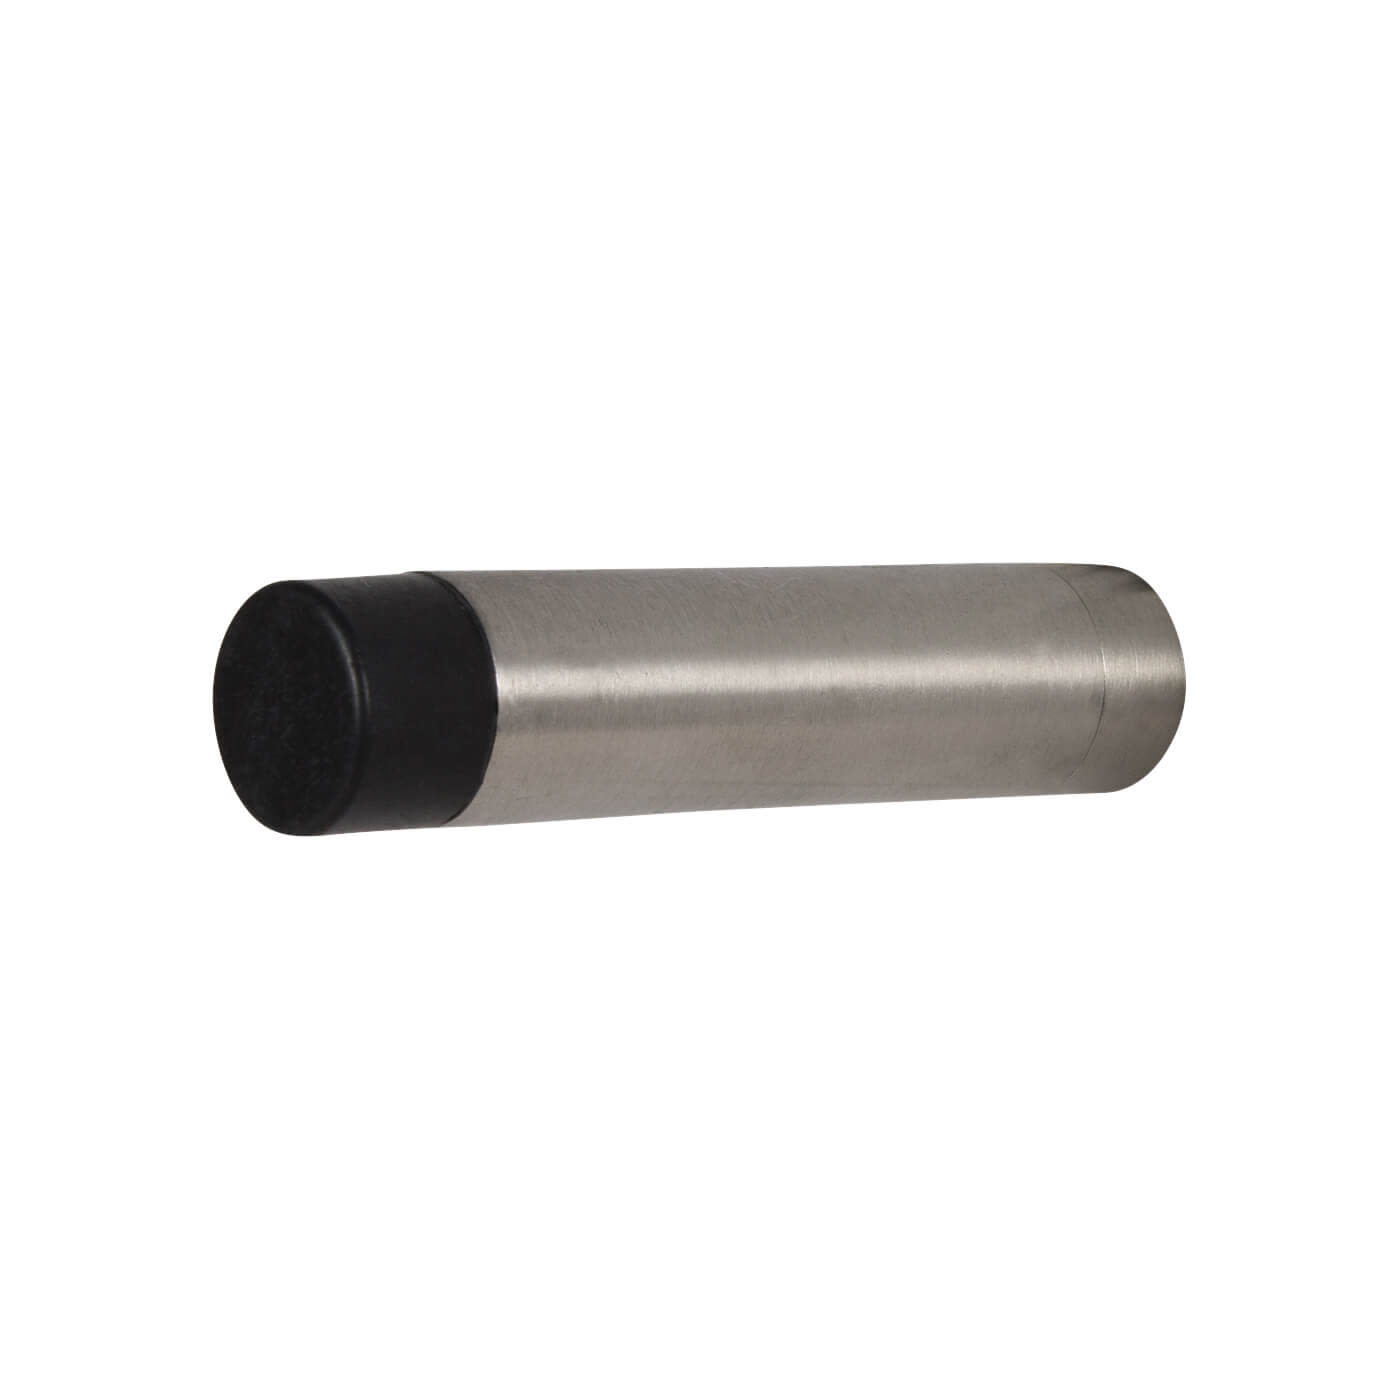 Cylinder Pattern Projection Door Stop - 70mm - Satin Stainless Steel)